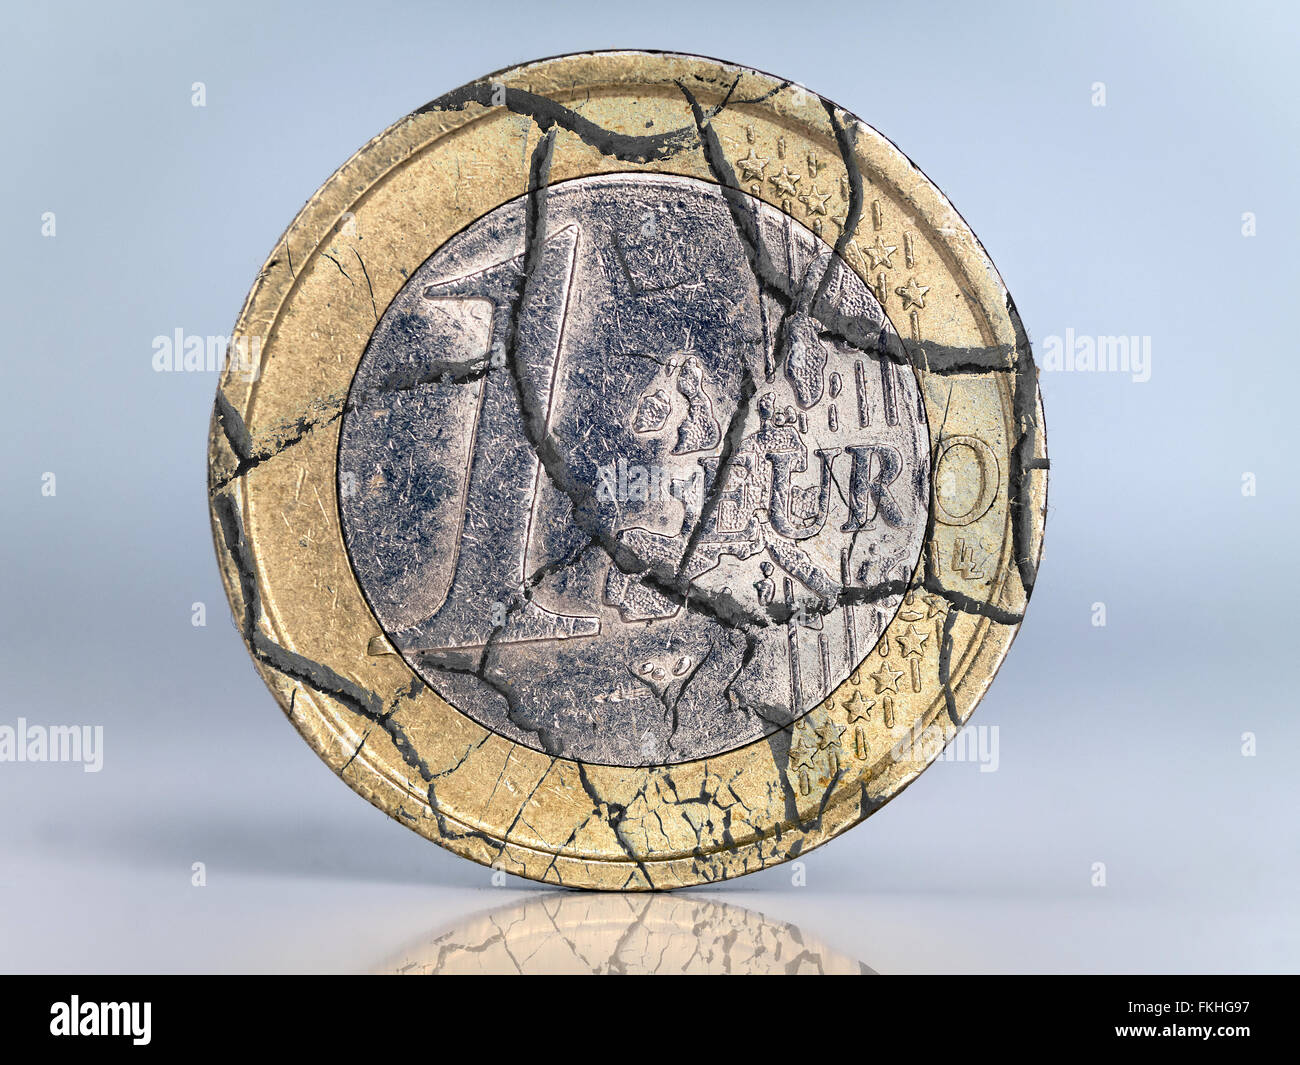 One euro coin cracked as metaphor of euro currency collapse - Stock Image